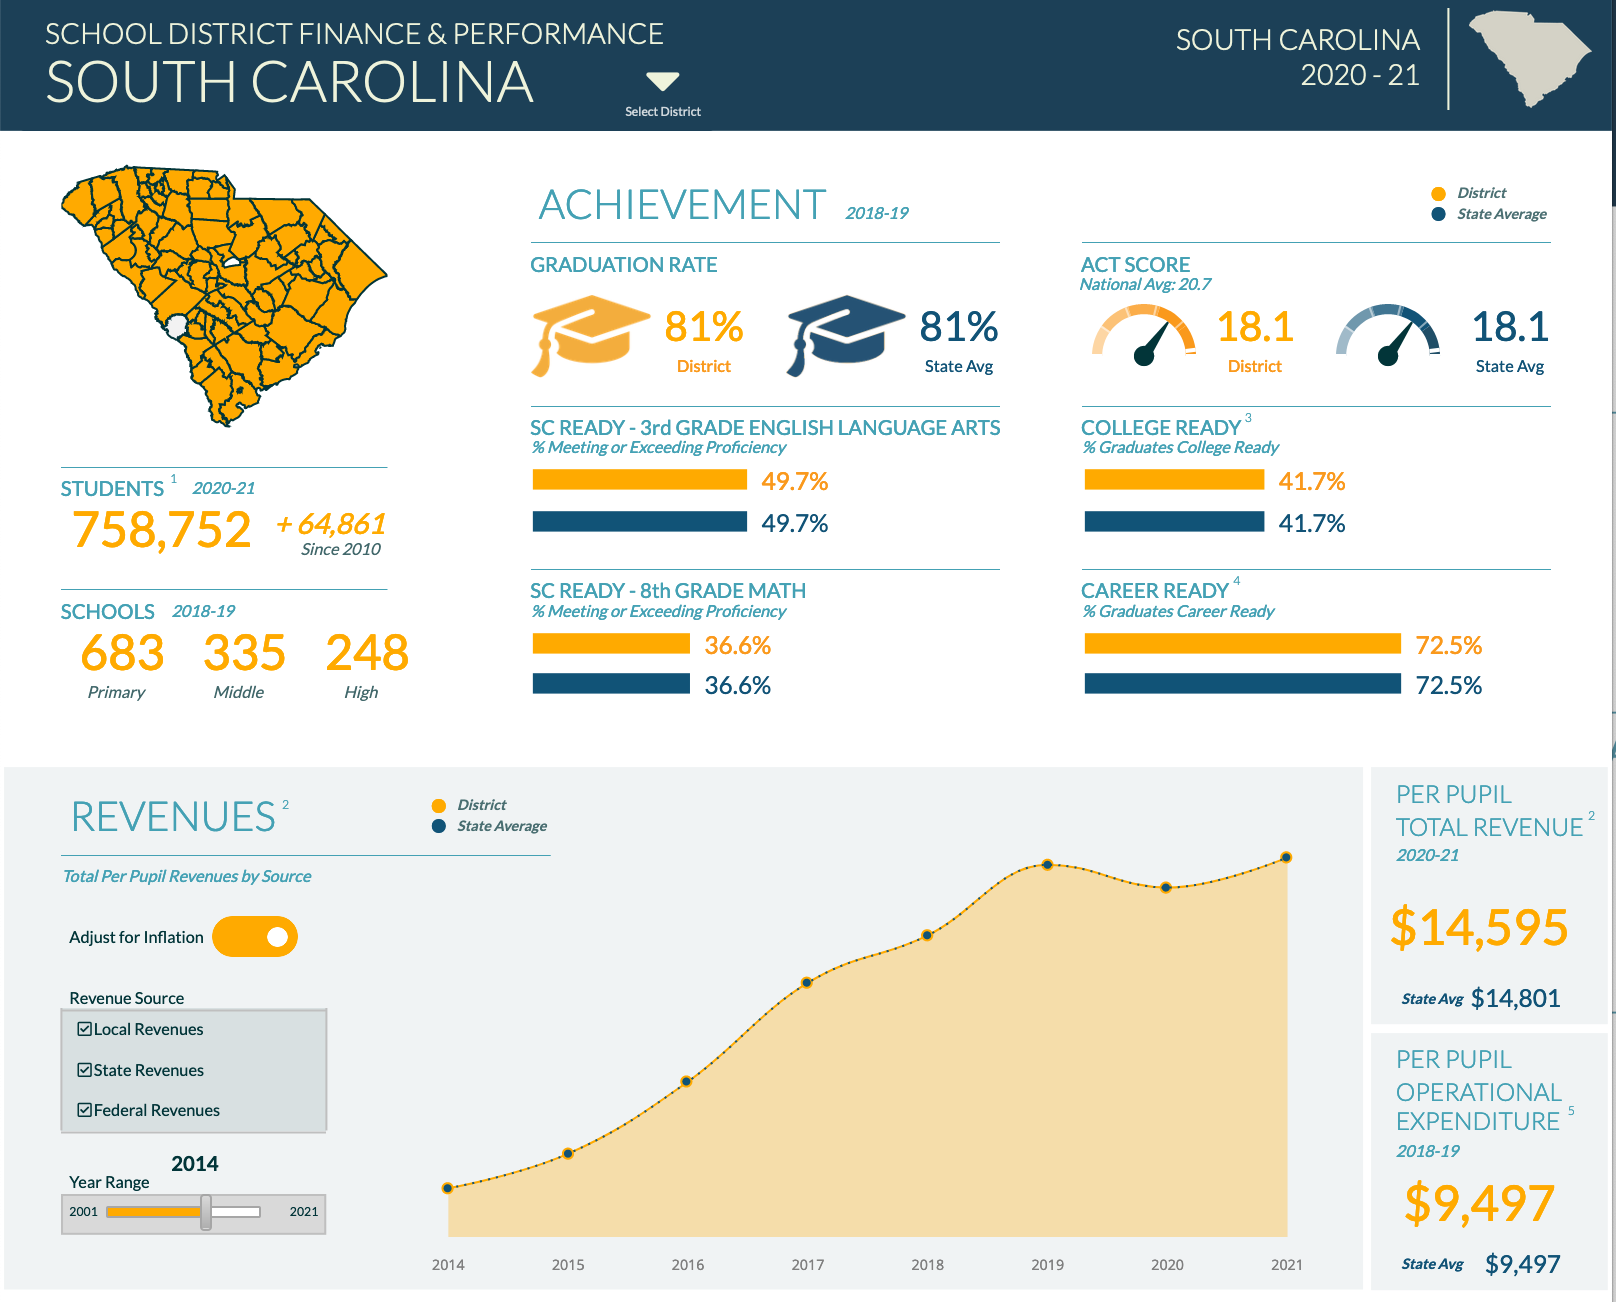 South Carolina Education Dashboard